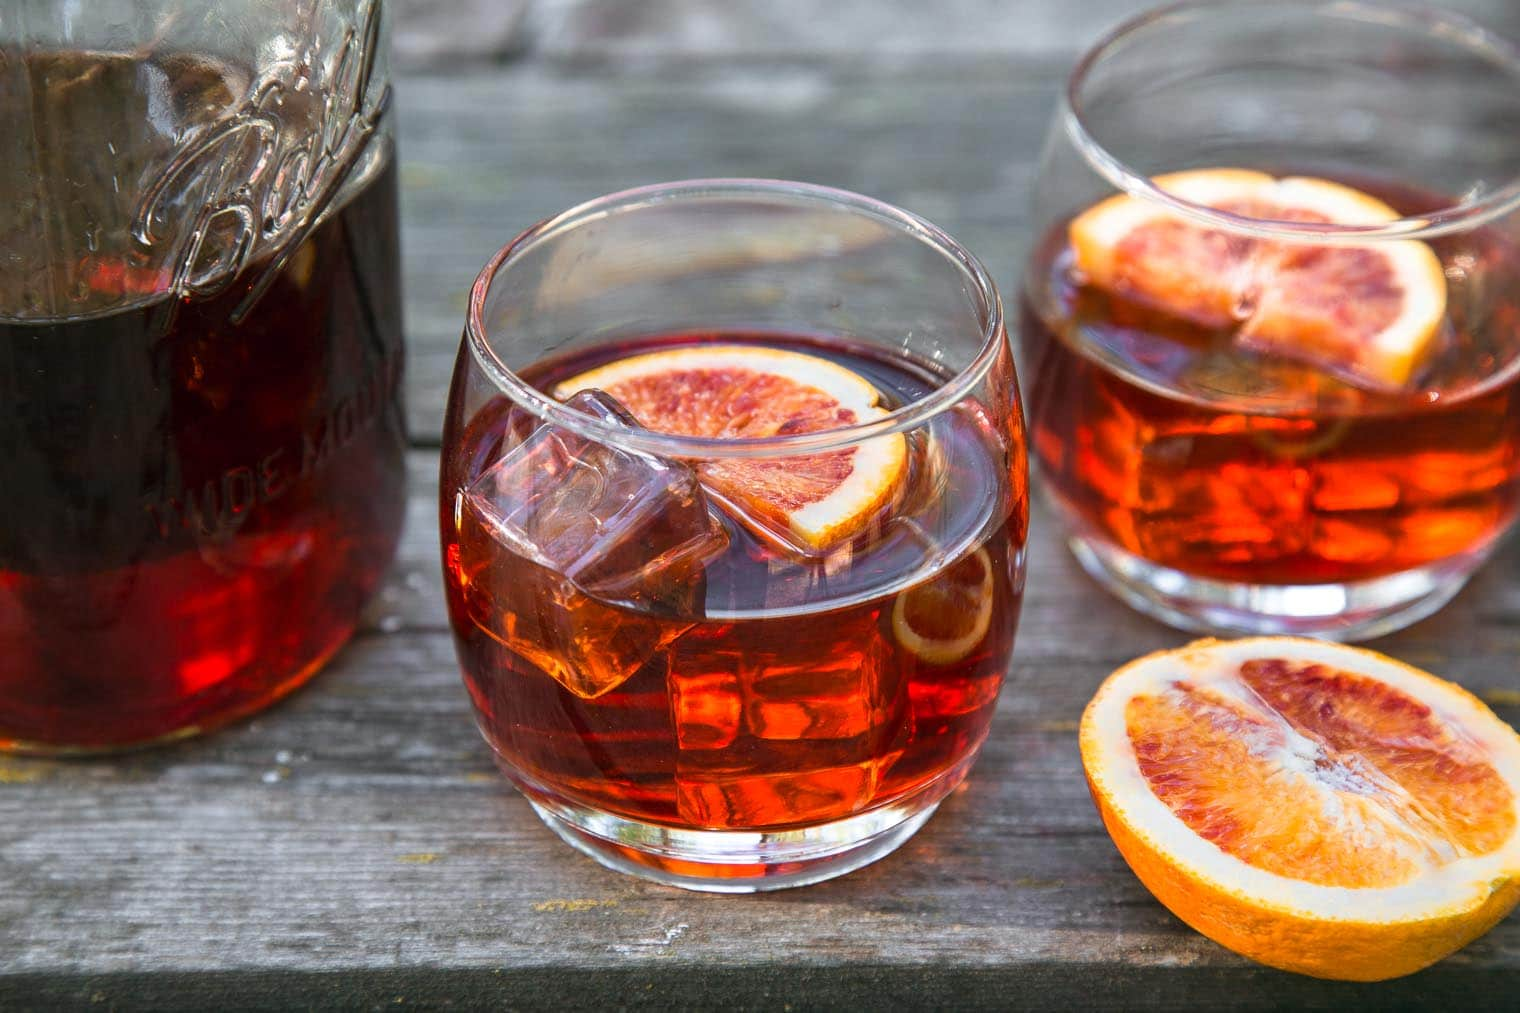 Negroni cocktail in a rocks glass on a wooden camping table.